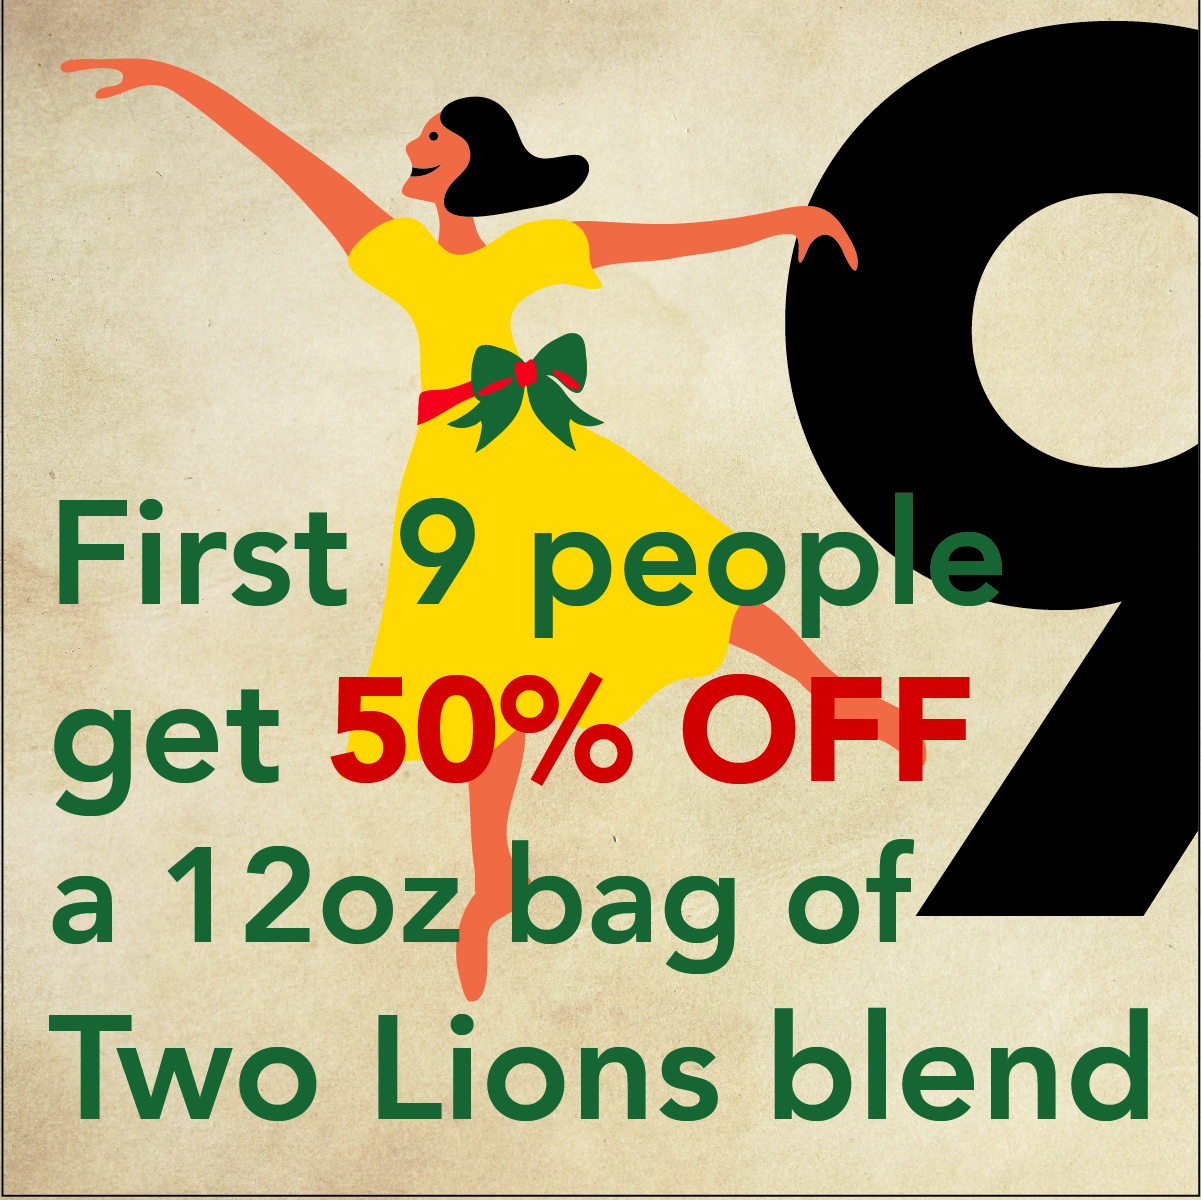 DEC. 16  - 9 LADIES DANCING  The first 9 people to buy a 12oz bag of  Two Lions Blend  get it for 50% OFF at  Vienna Coffee House,   Regas  or online. Use online coupon code:  9DANCE50 .